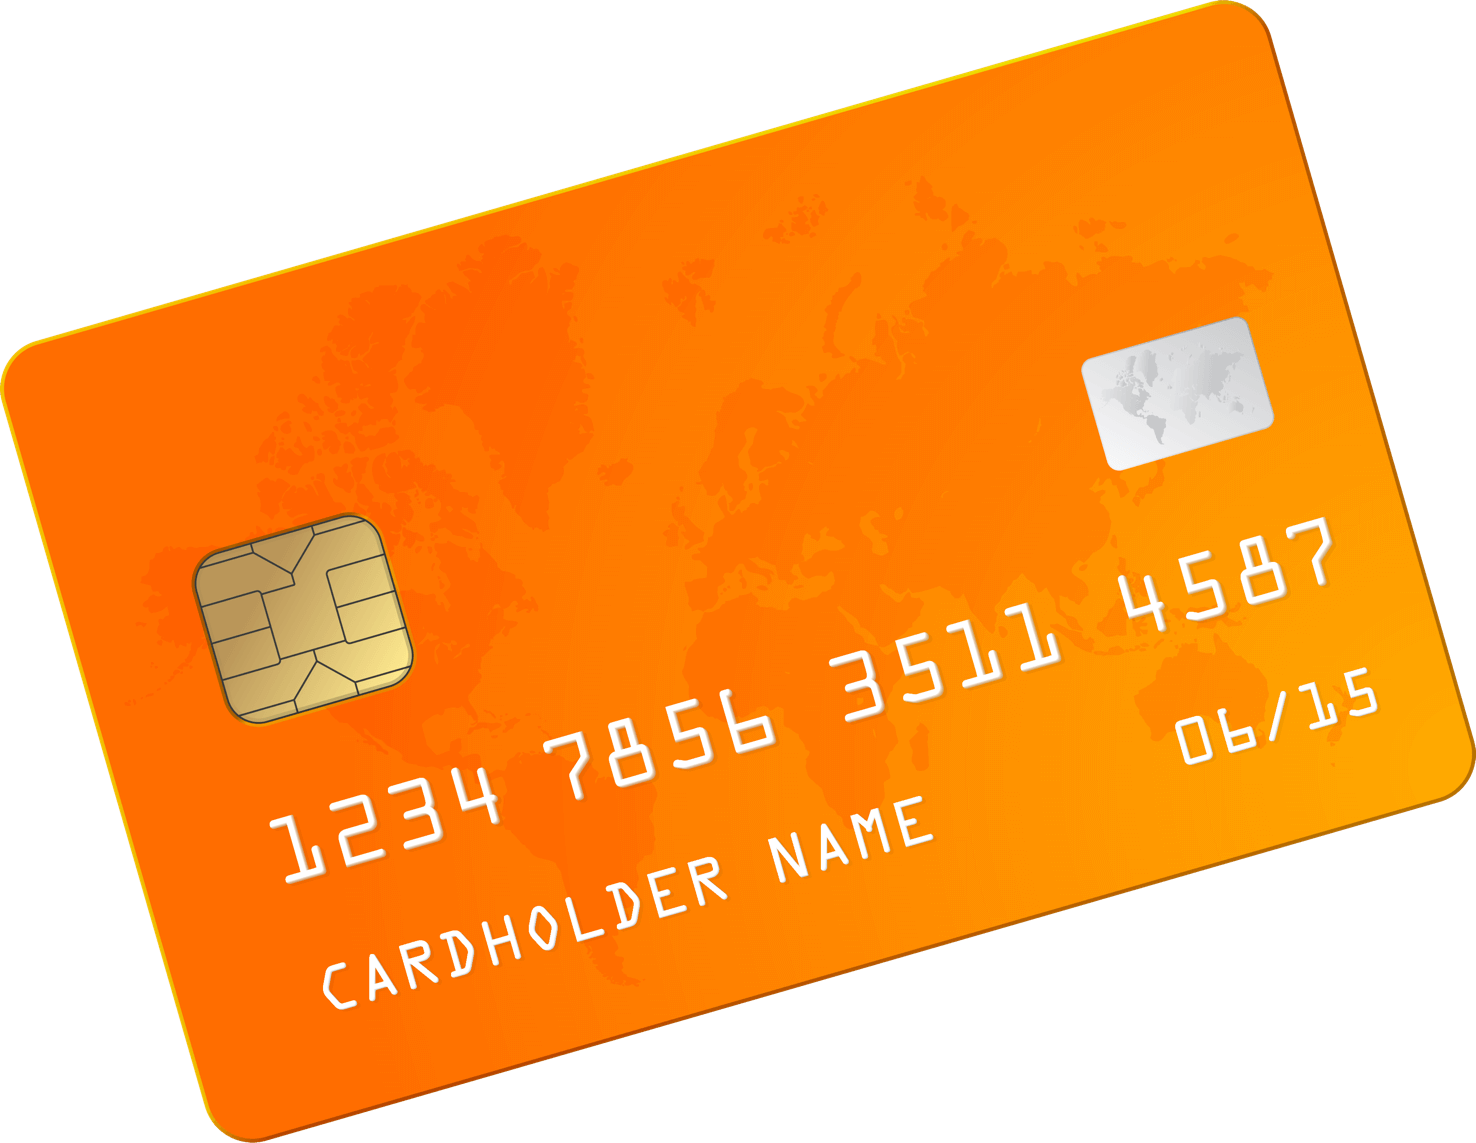 credit_card_PNG173.png?profile=RESIZE_710x